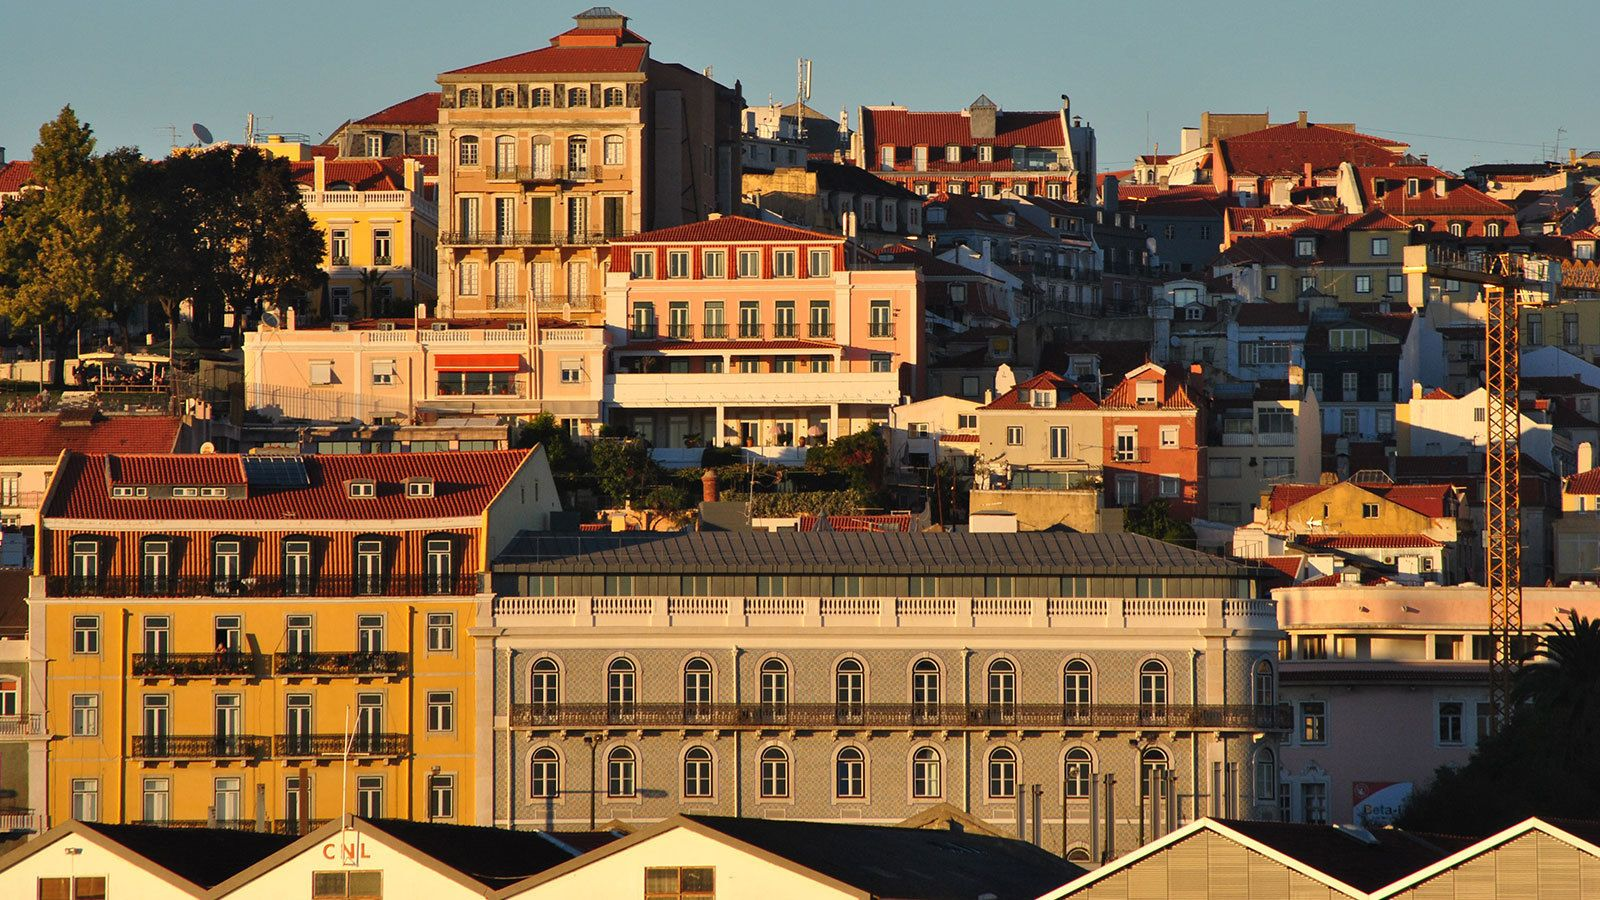 View of the city of Lisbon from the water